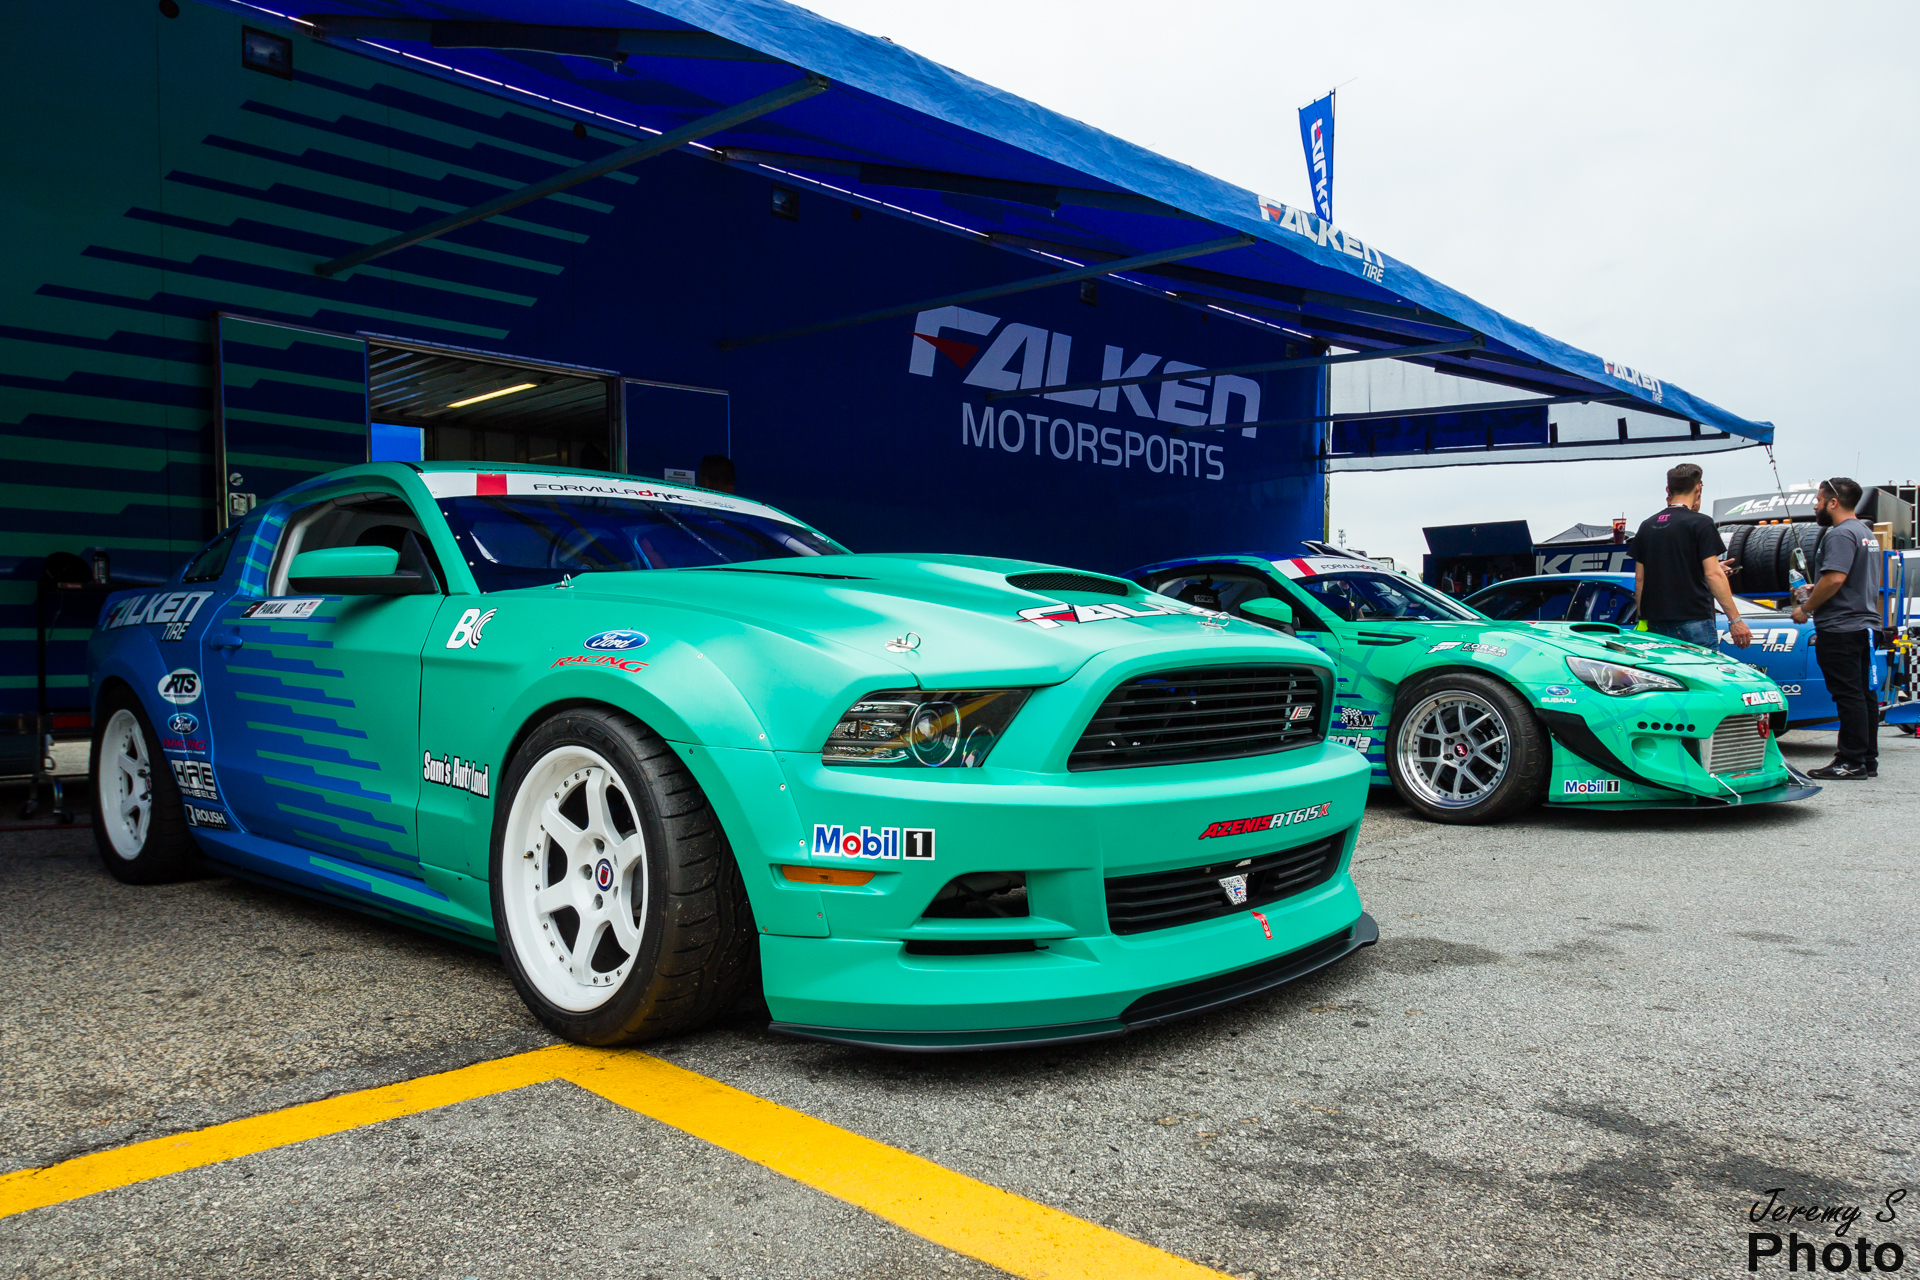 Team Falken rig with Justin Pawlak's Mustang and Daijiro Yoshihara's BRZ.